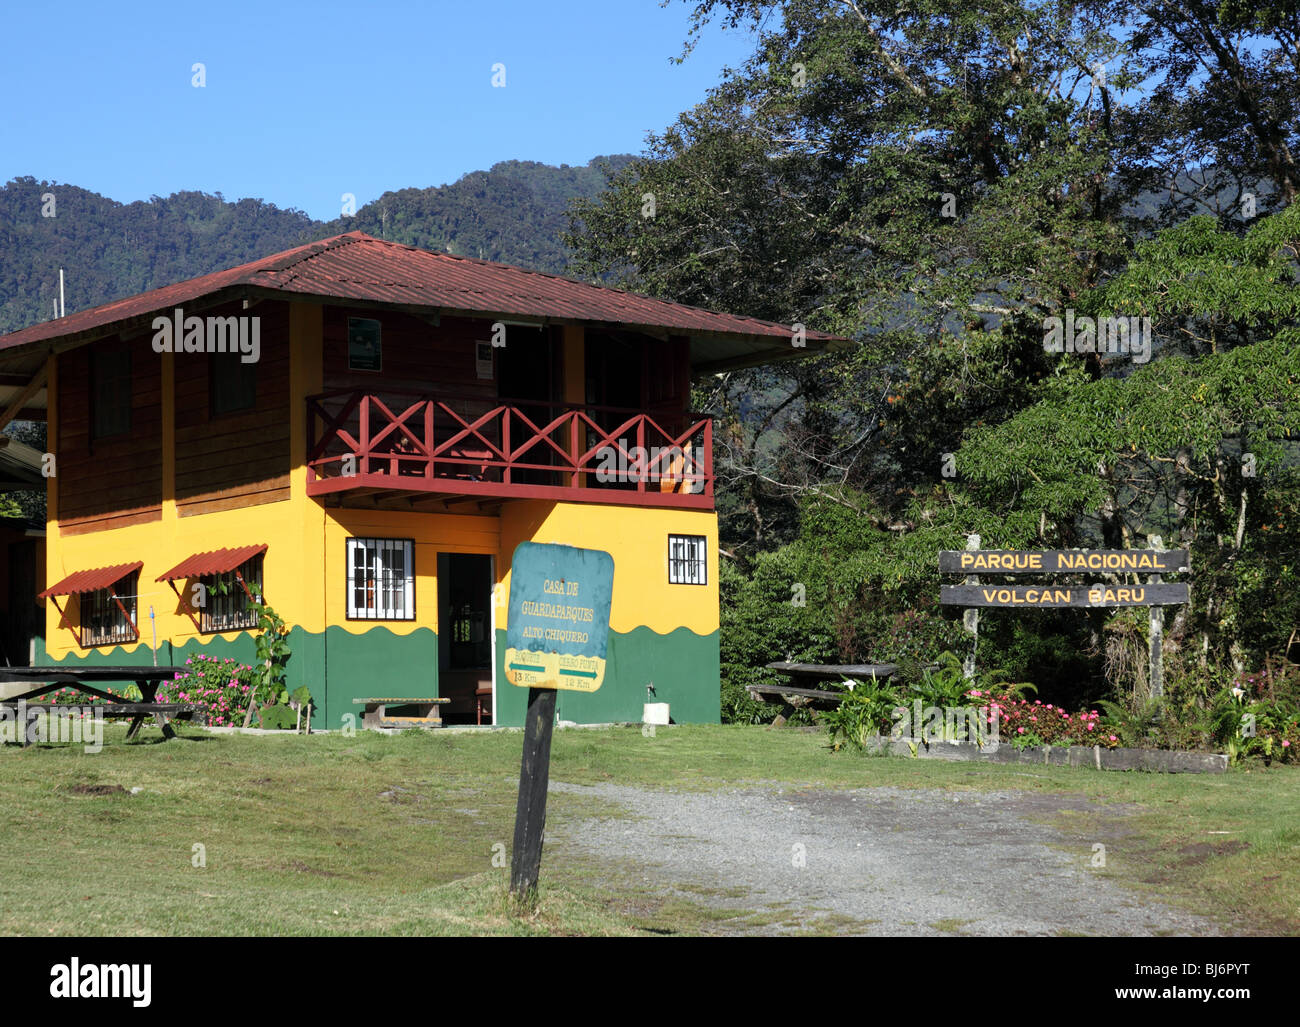 ANAM wardens building in cloud forest at start of Quetzal Trail, Volcan Baru National Park, near Boquete, Chiriqui, - Stock Image